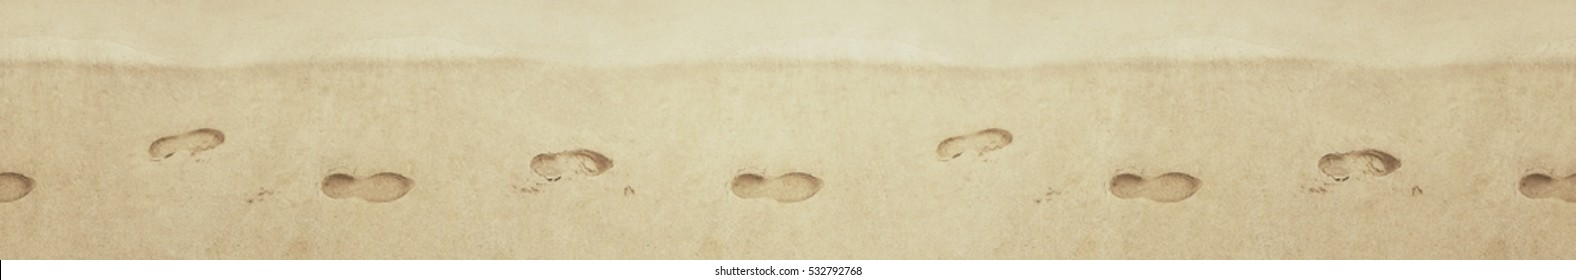 Seamless texture. Pattern. Footprints in the sand. Traces of shoes on  sandy shore